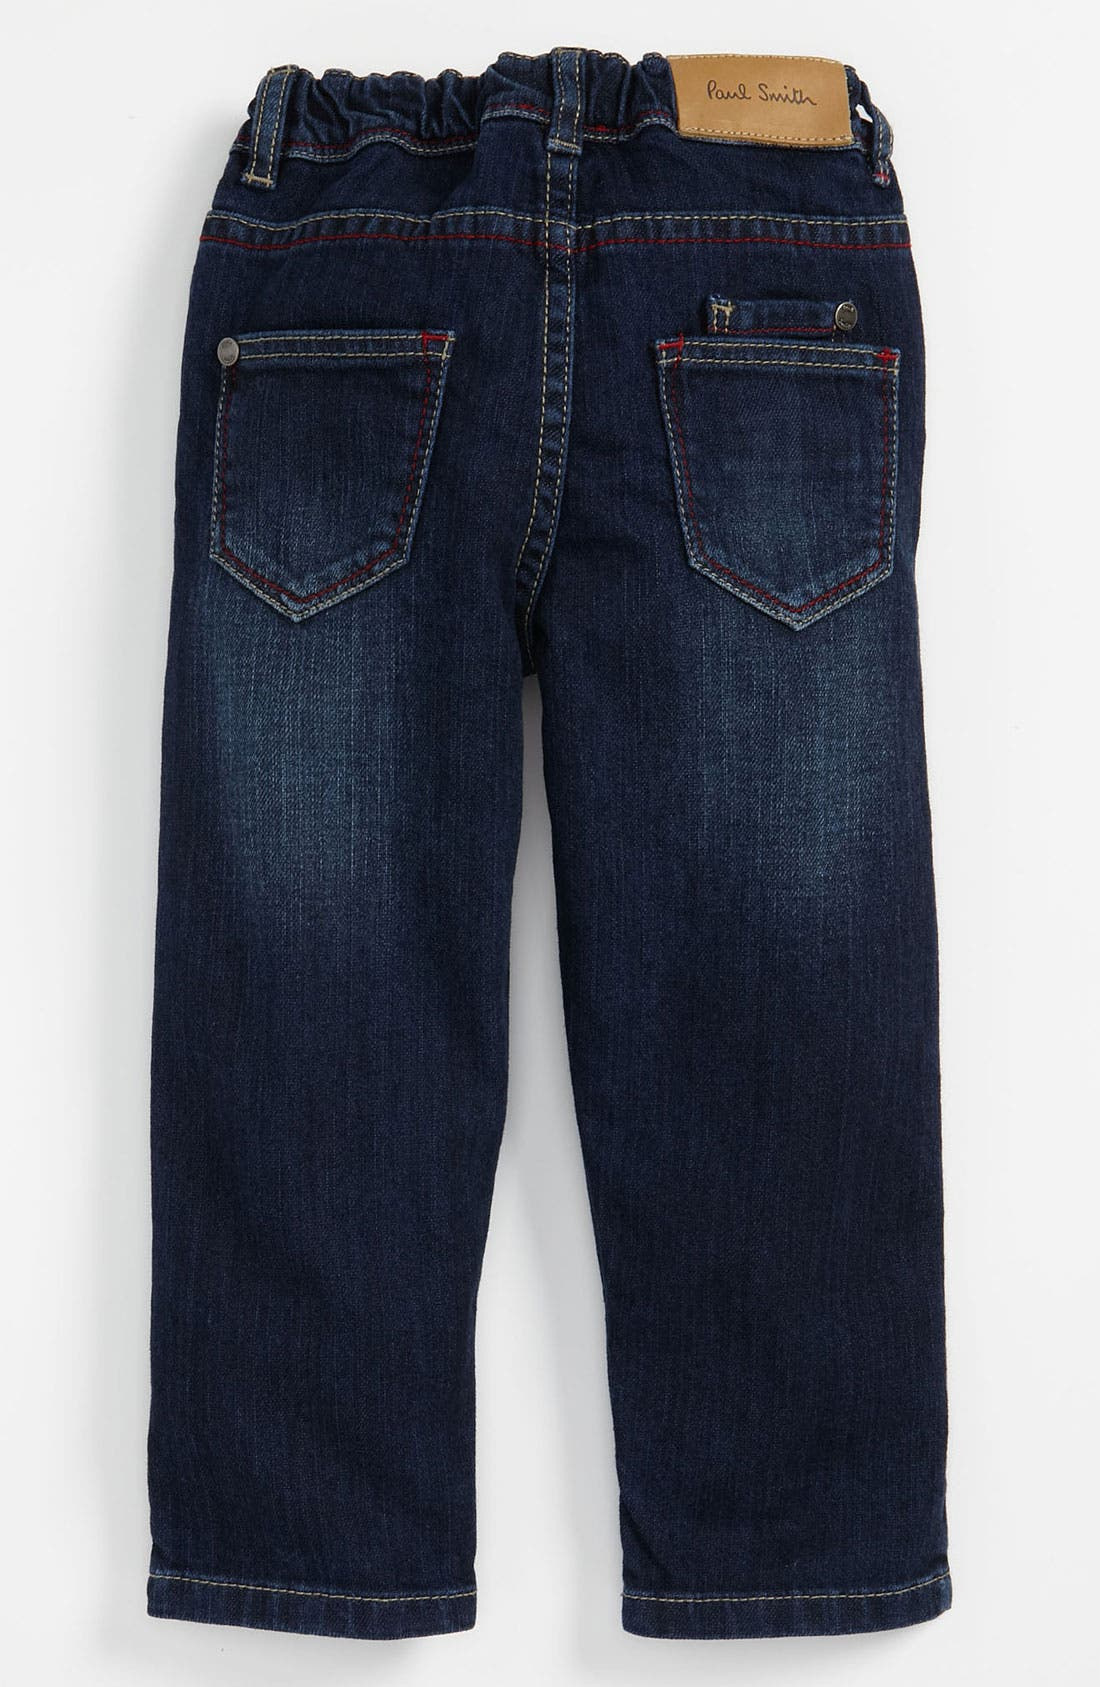 Main Image - Paul Smith Junior 'Colby' Pants (Toddler)